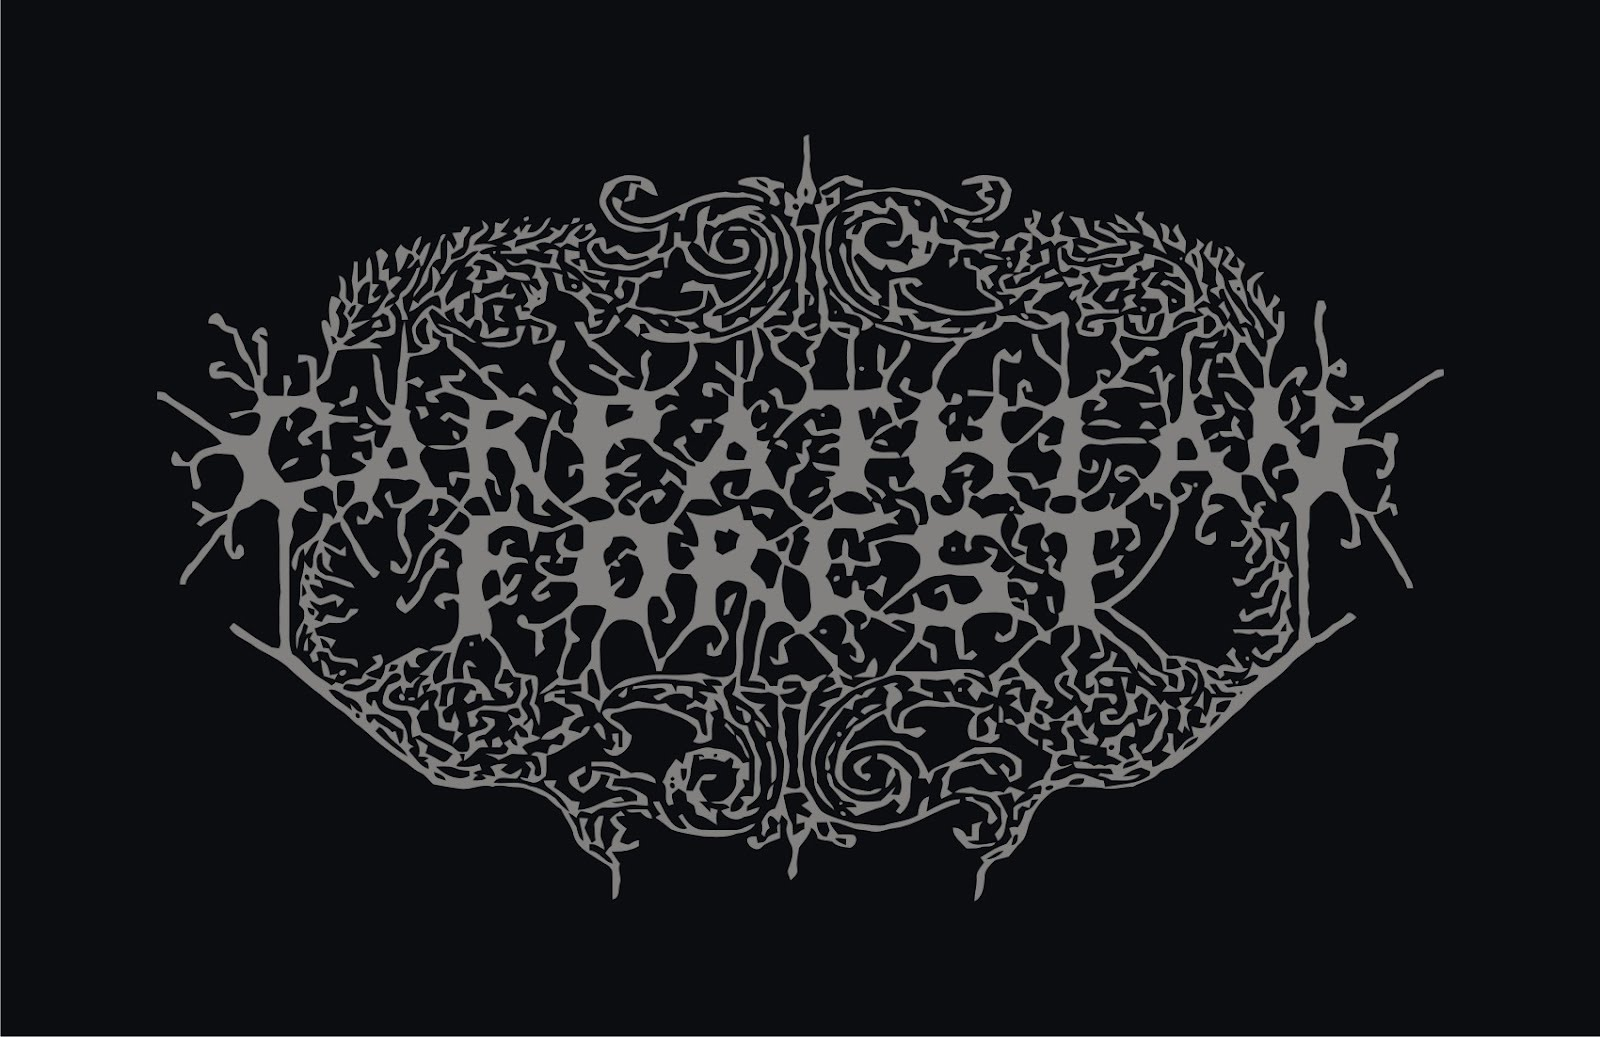 carpathian_forest-black_shining_leather_back_vector